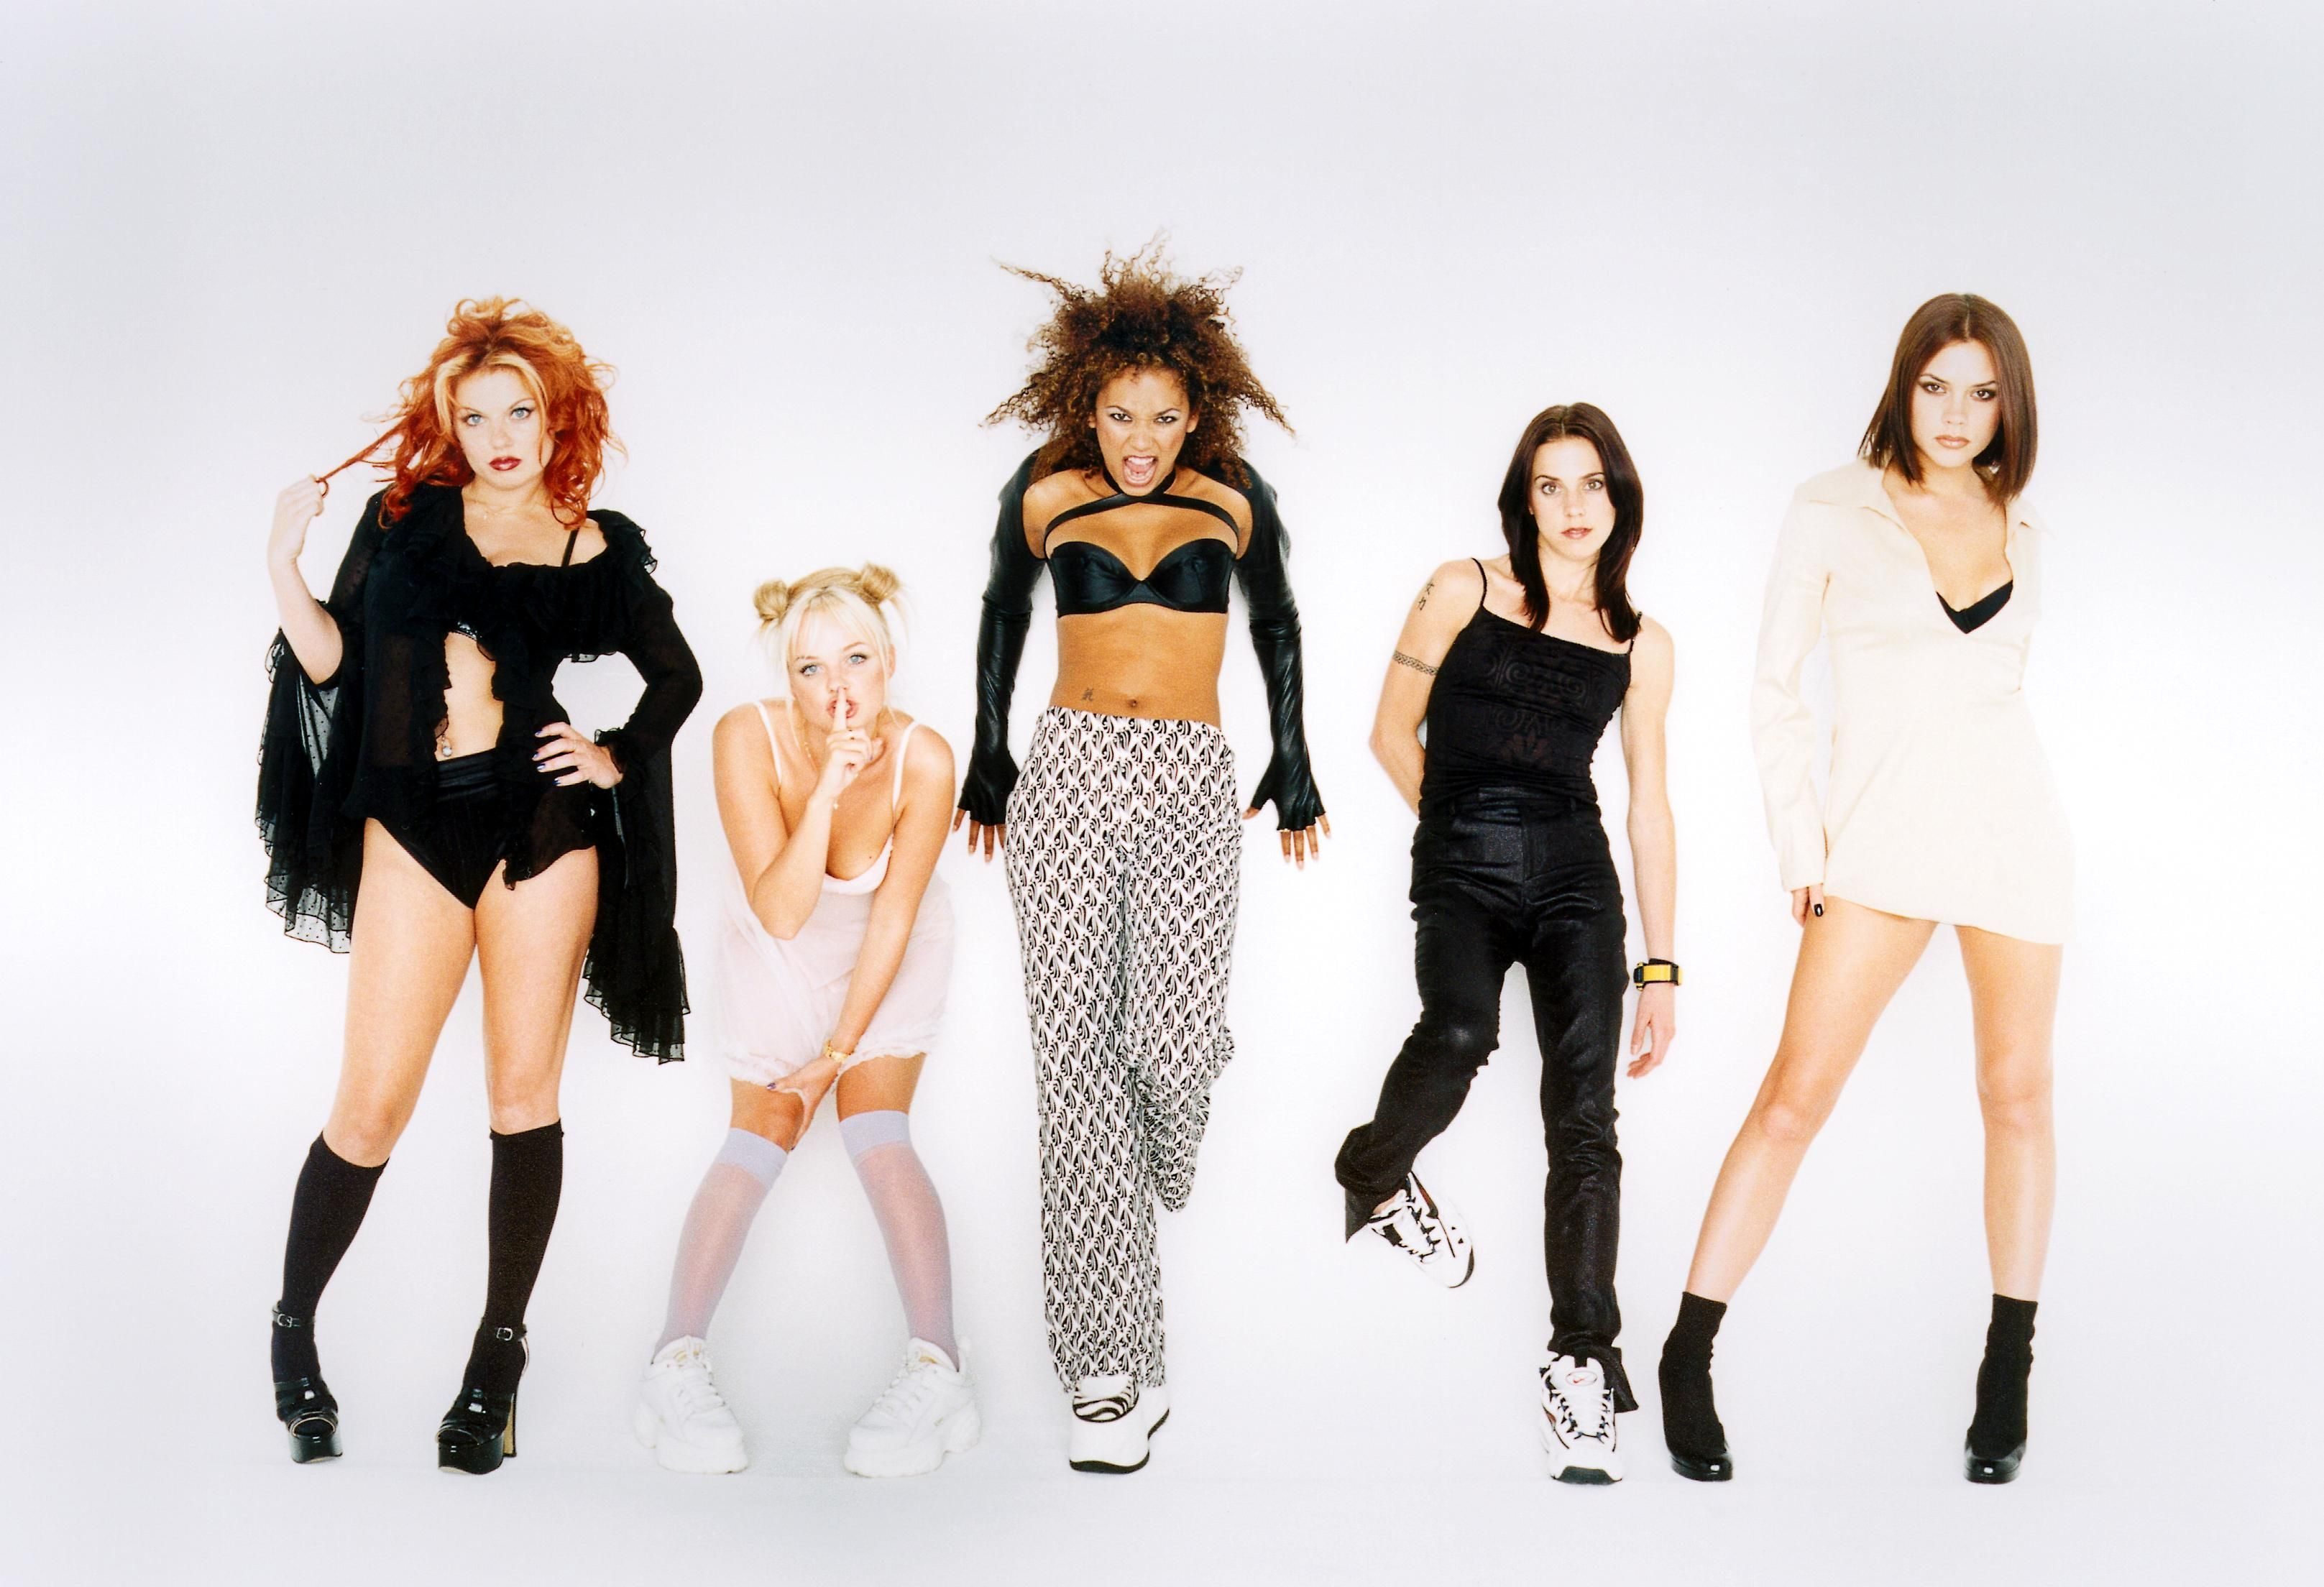 Celebrating The Spice Girls Iconic Style 20 Years Later